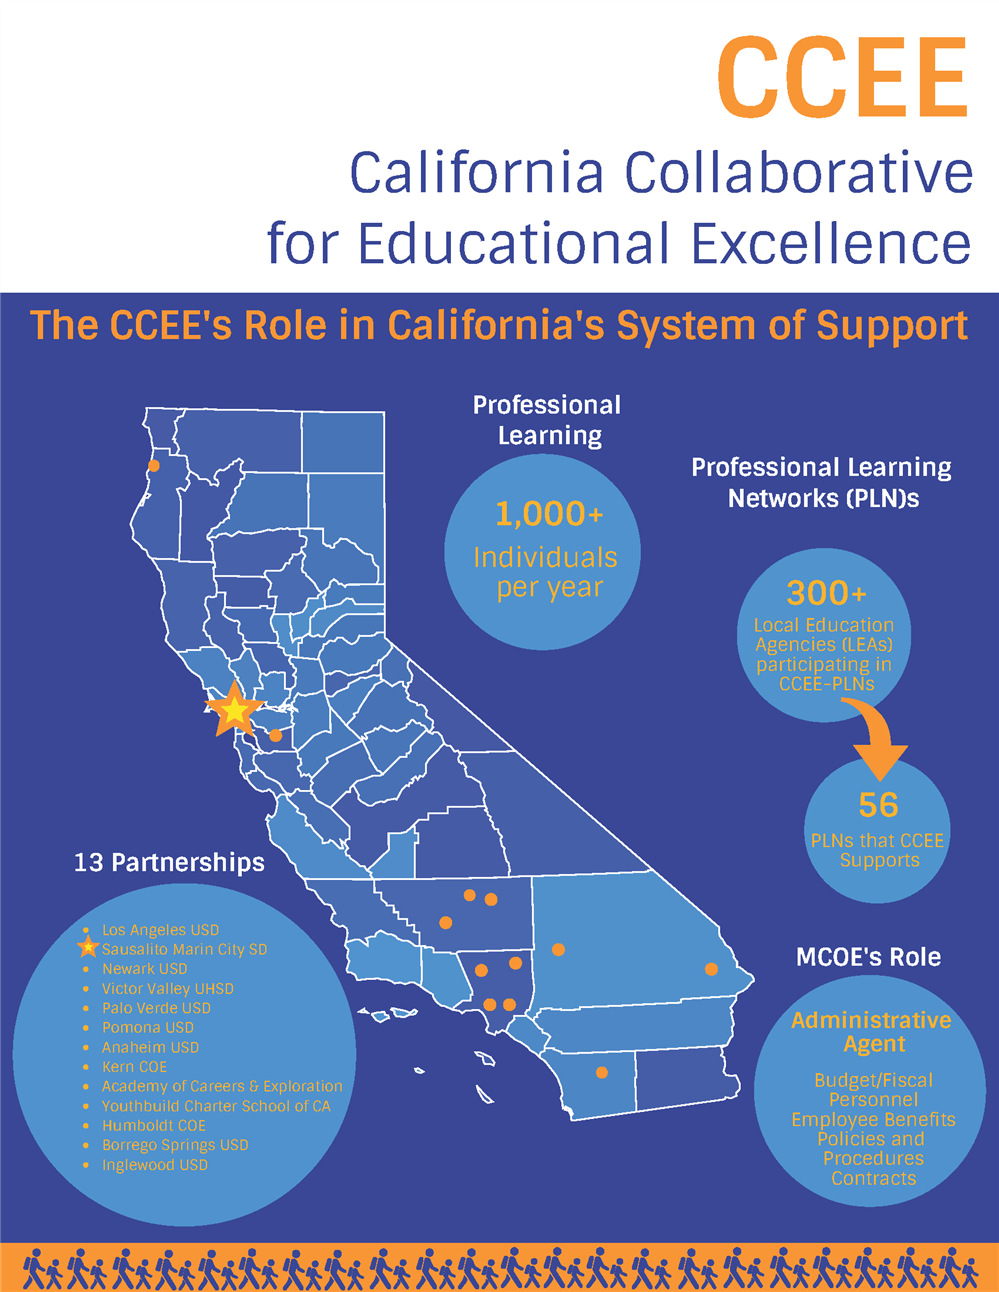 California Collaborative for Educational Excellence Infographic